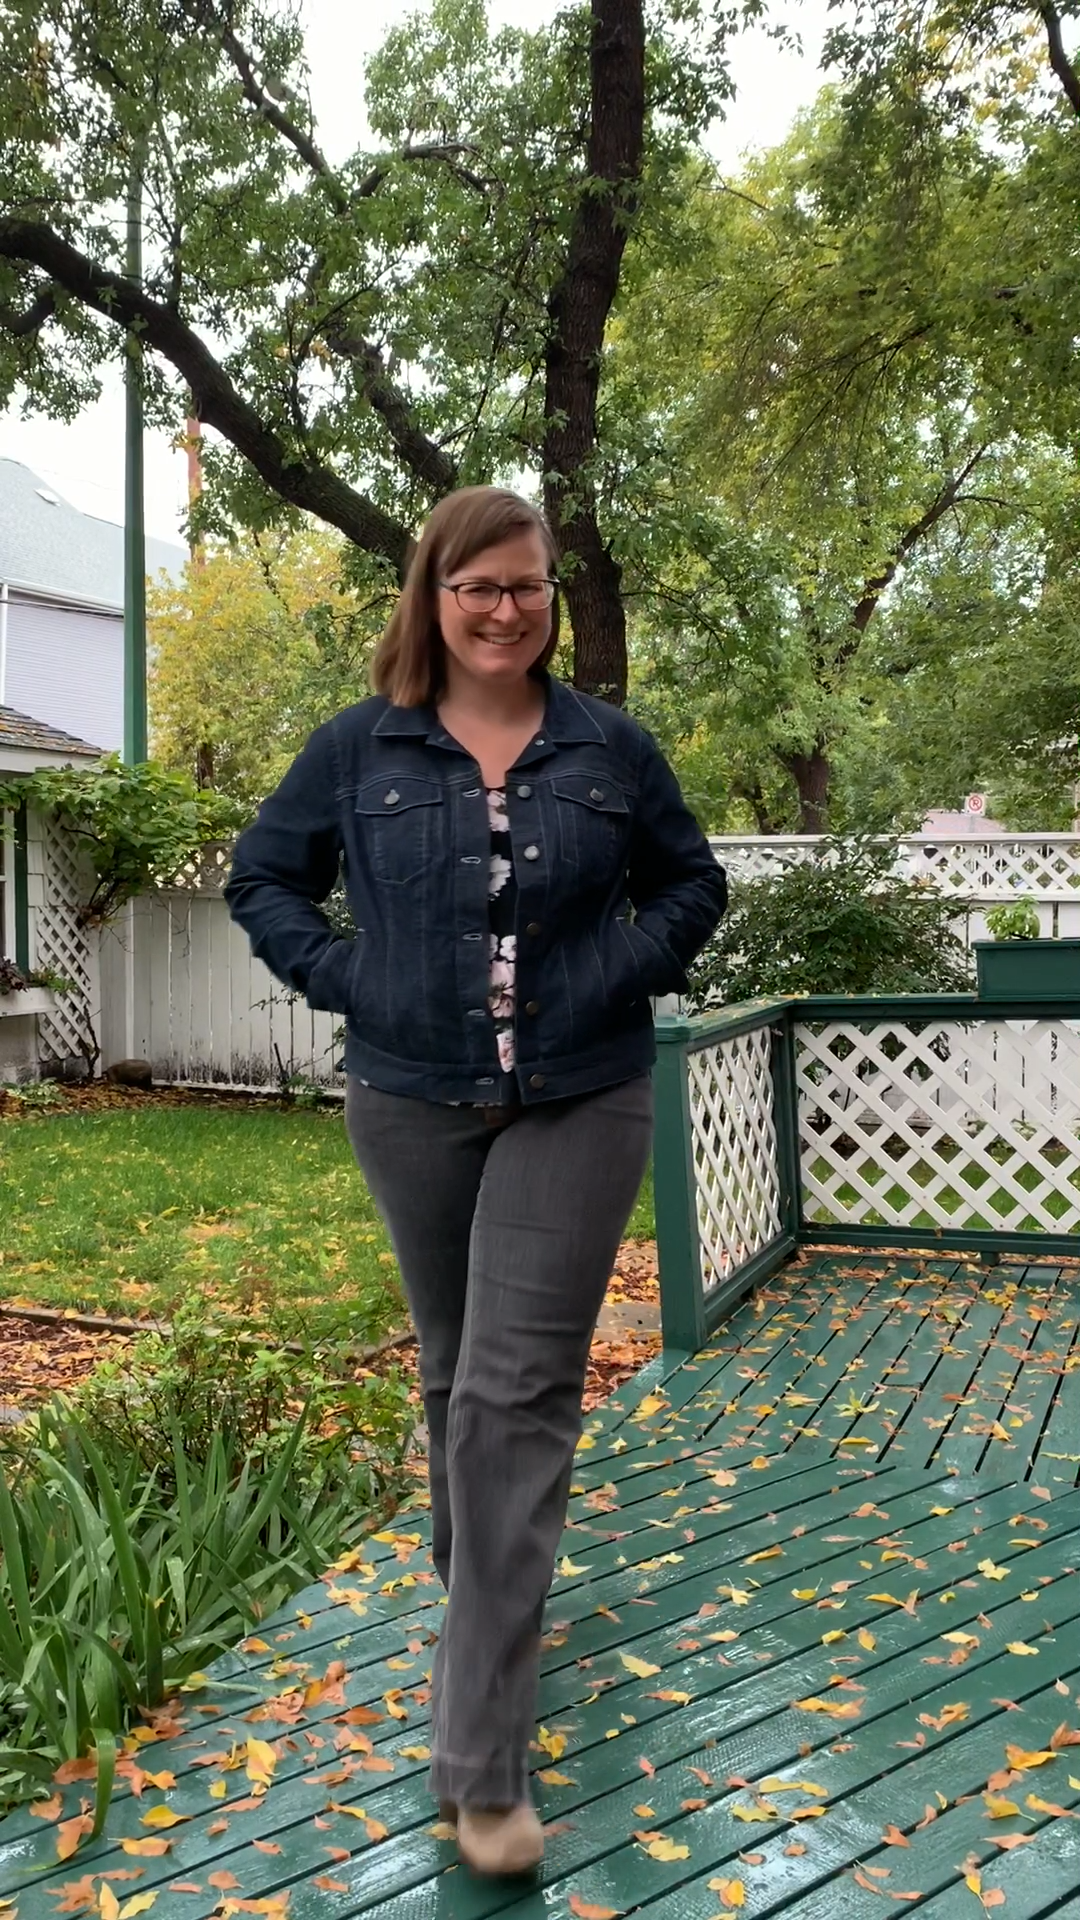 Sew your own classic jean jacket This downloadable PDF sewing pattern has all the details included to customize your perfect jacket Great sewing project to add a staple t...